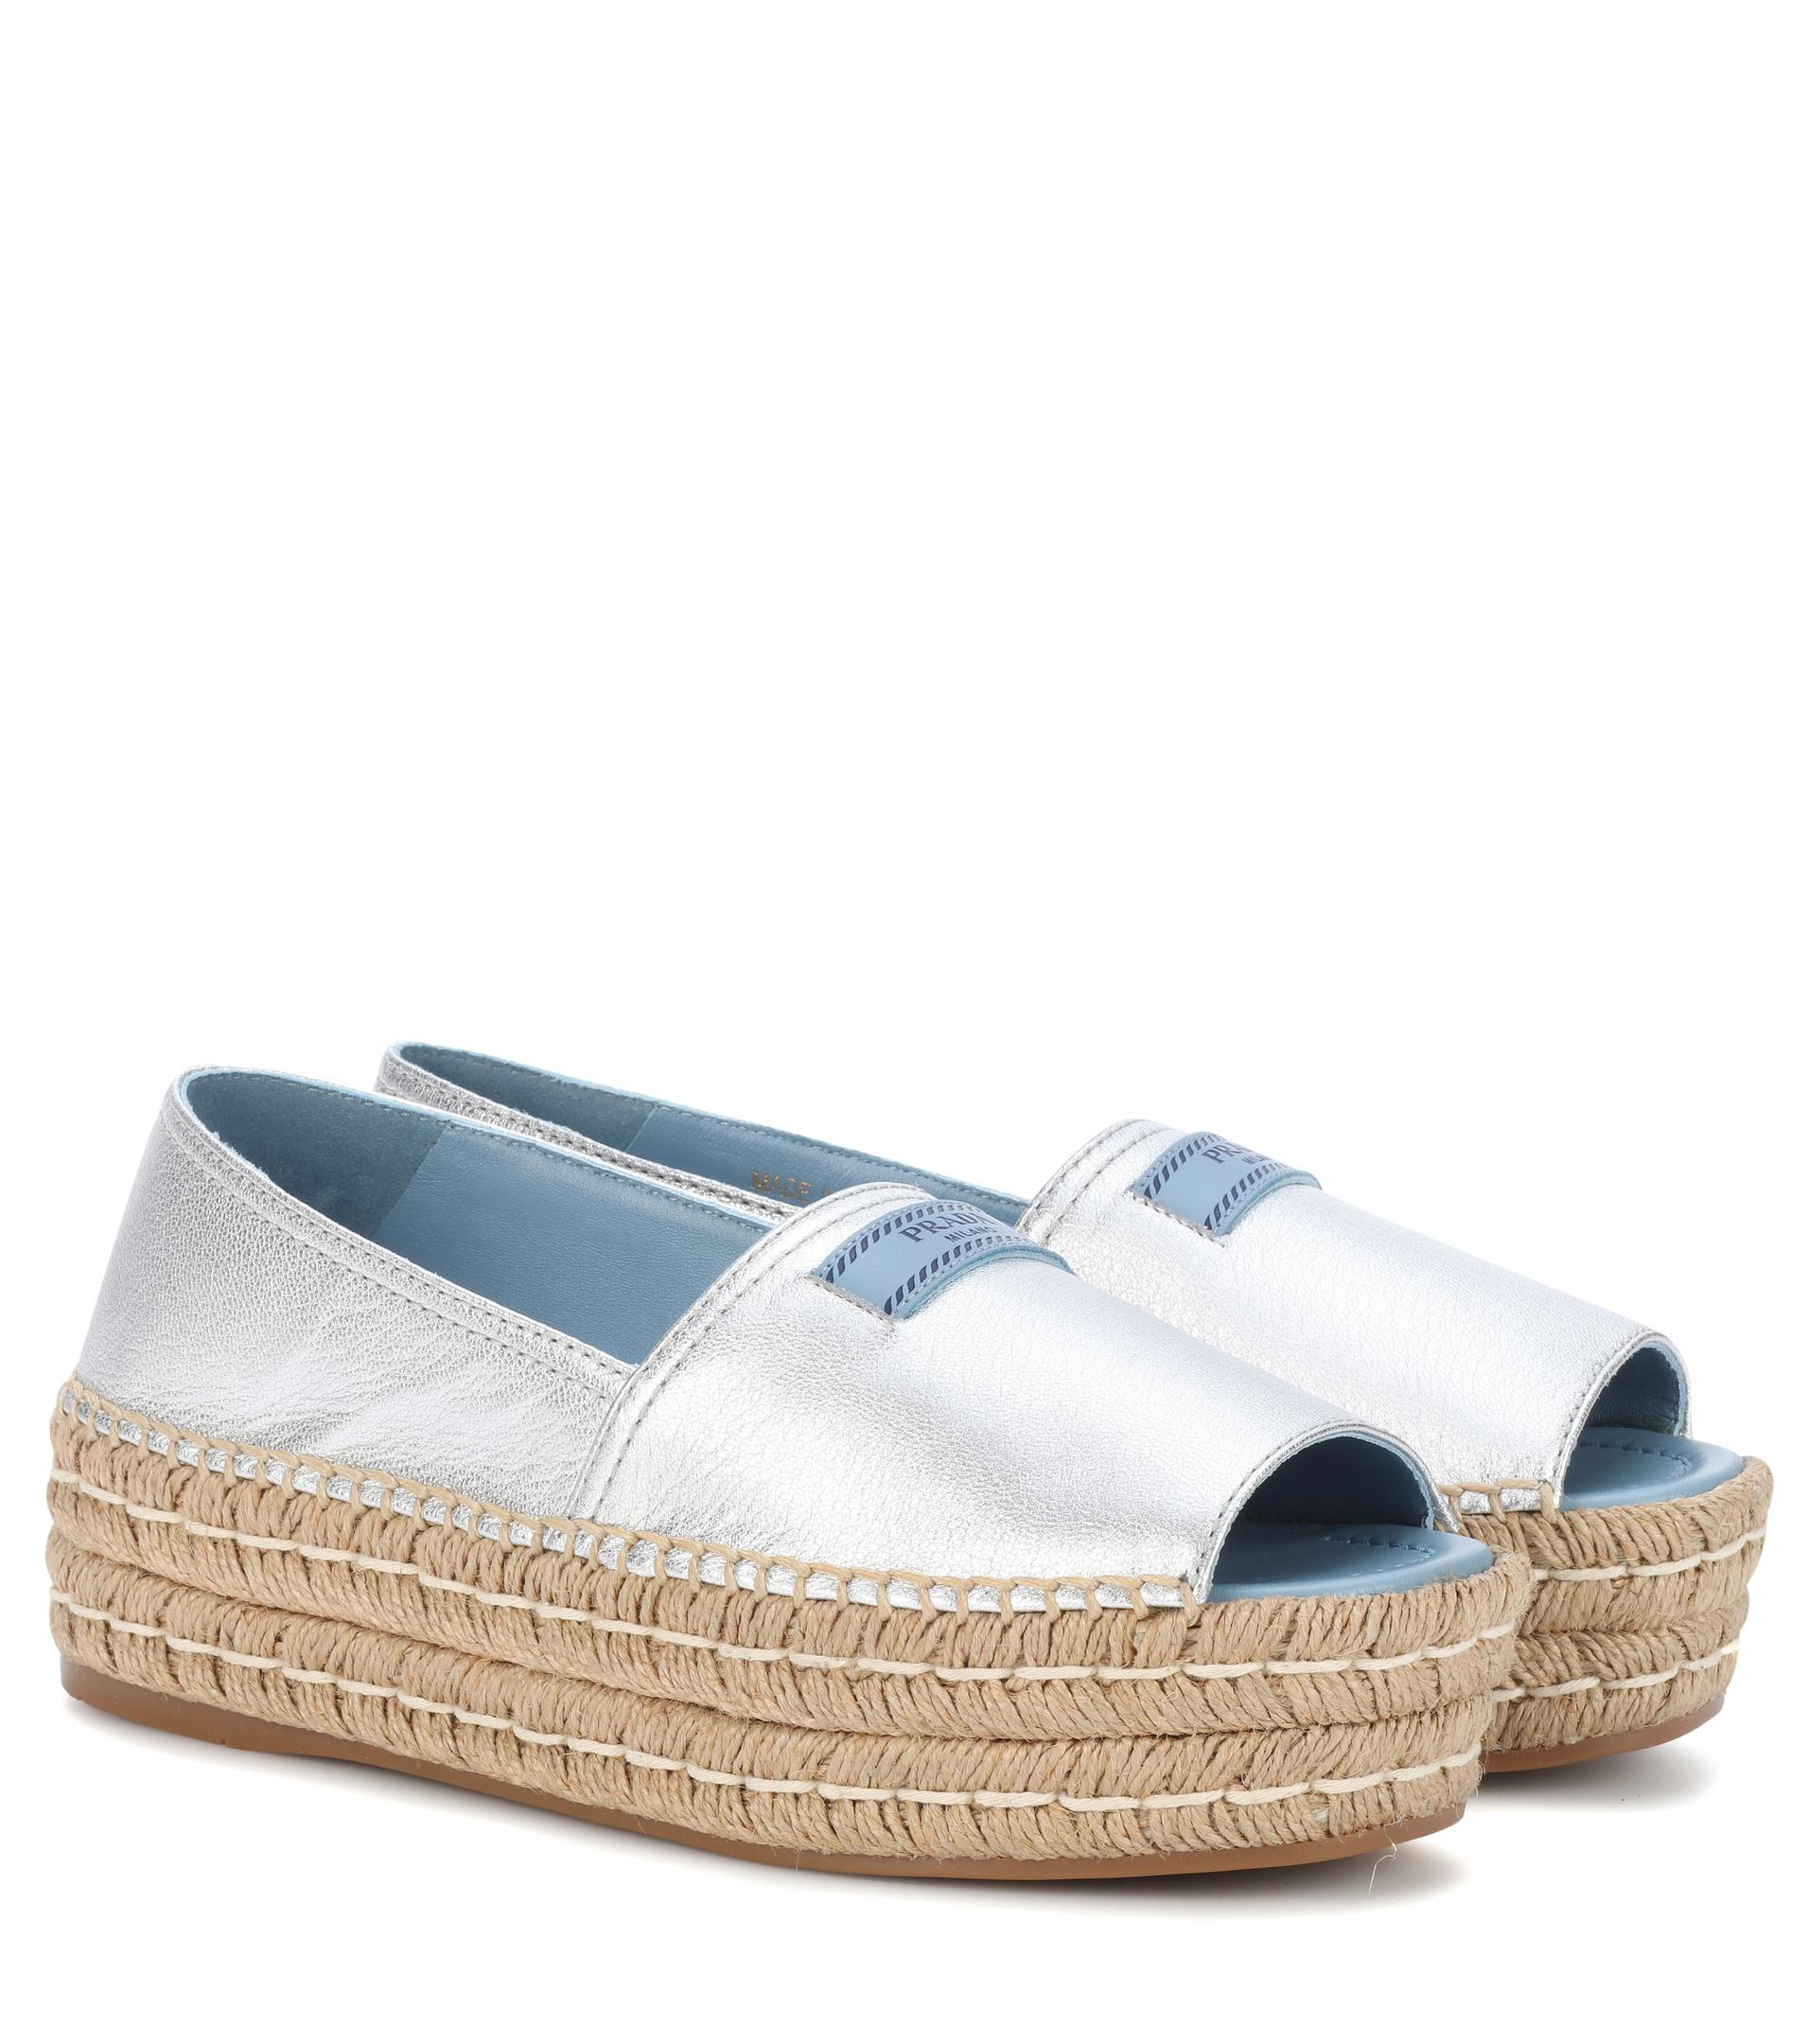 4102b0033 https://www.lyst.com/shoes/maison-margiela-replica-leather-and ...